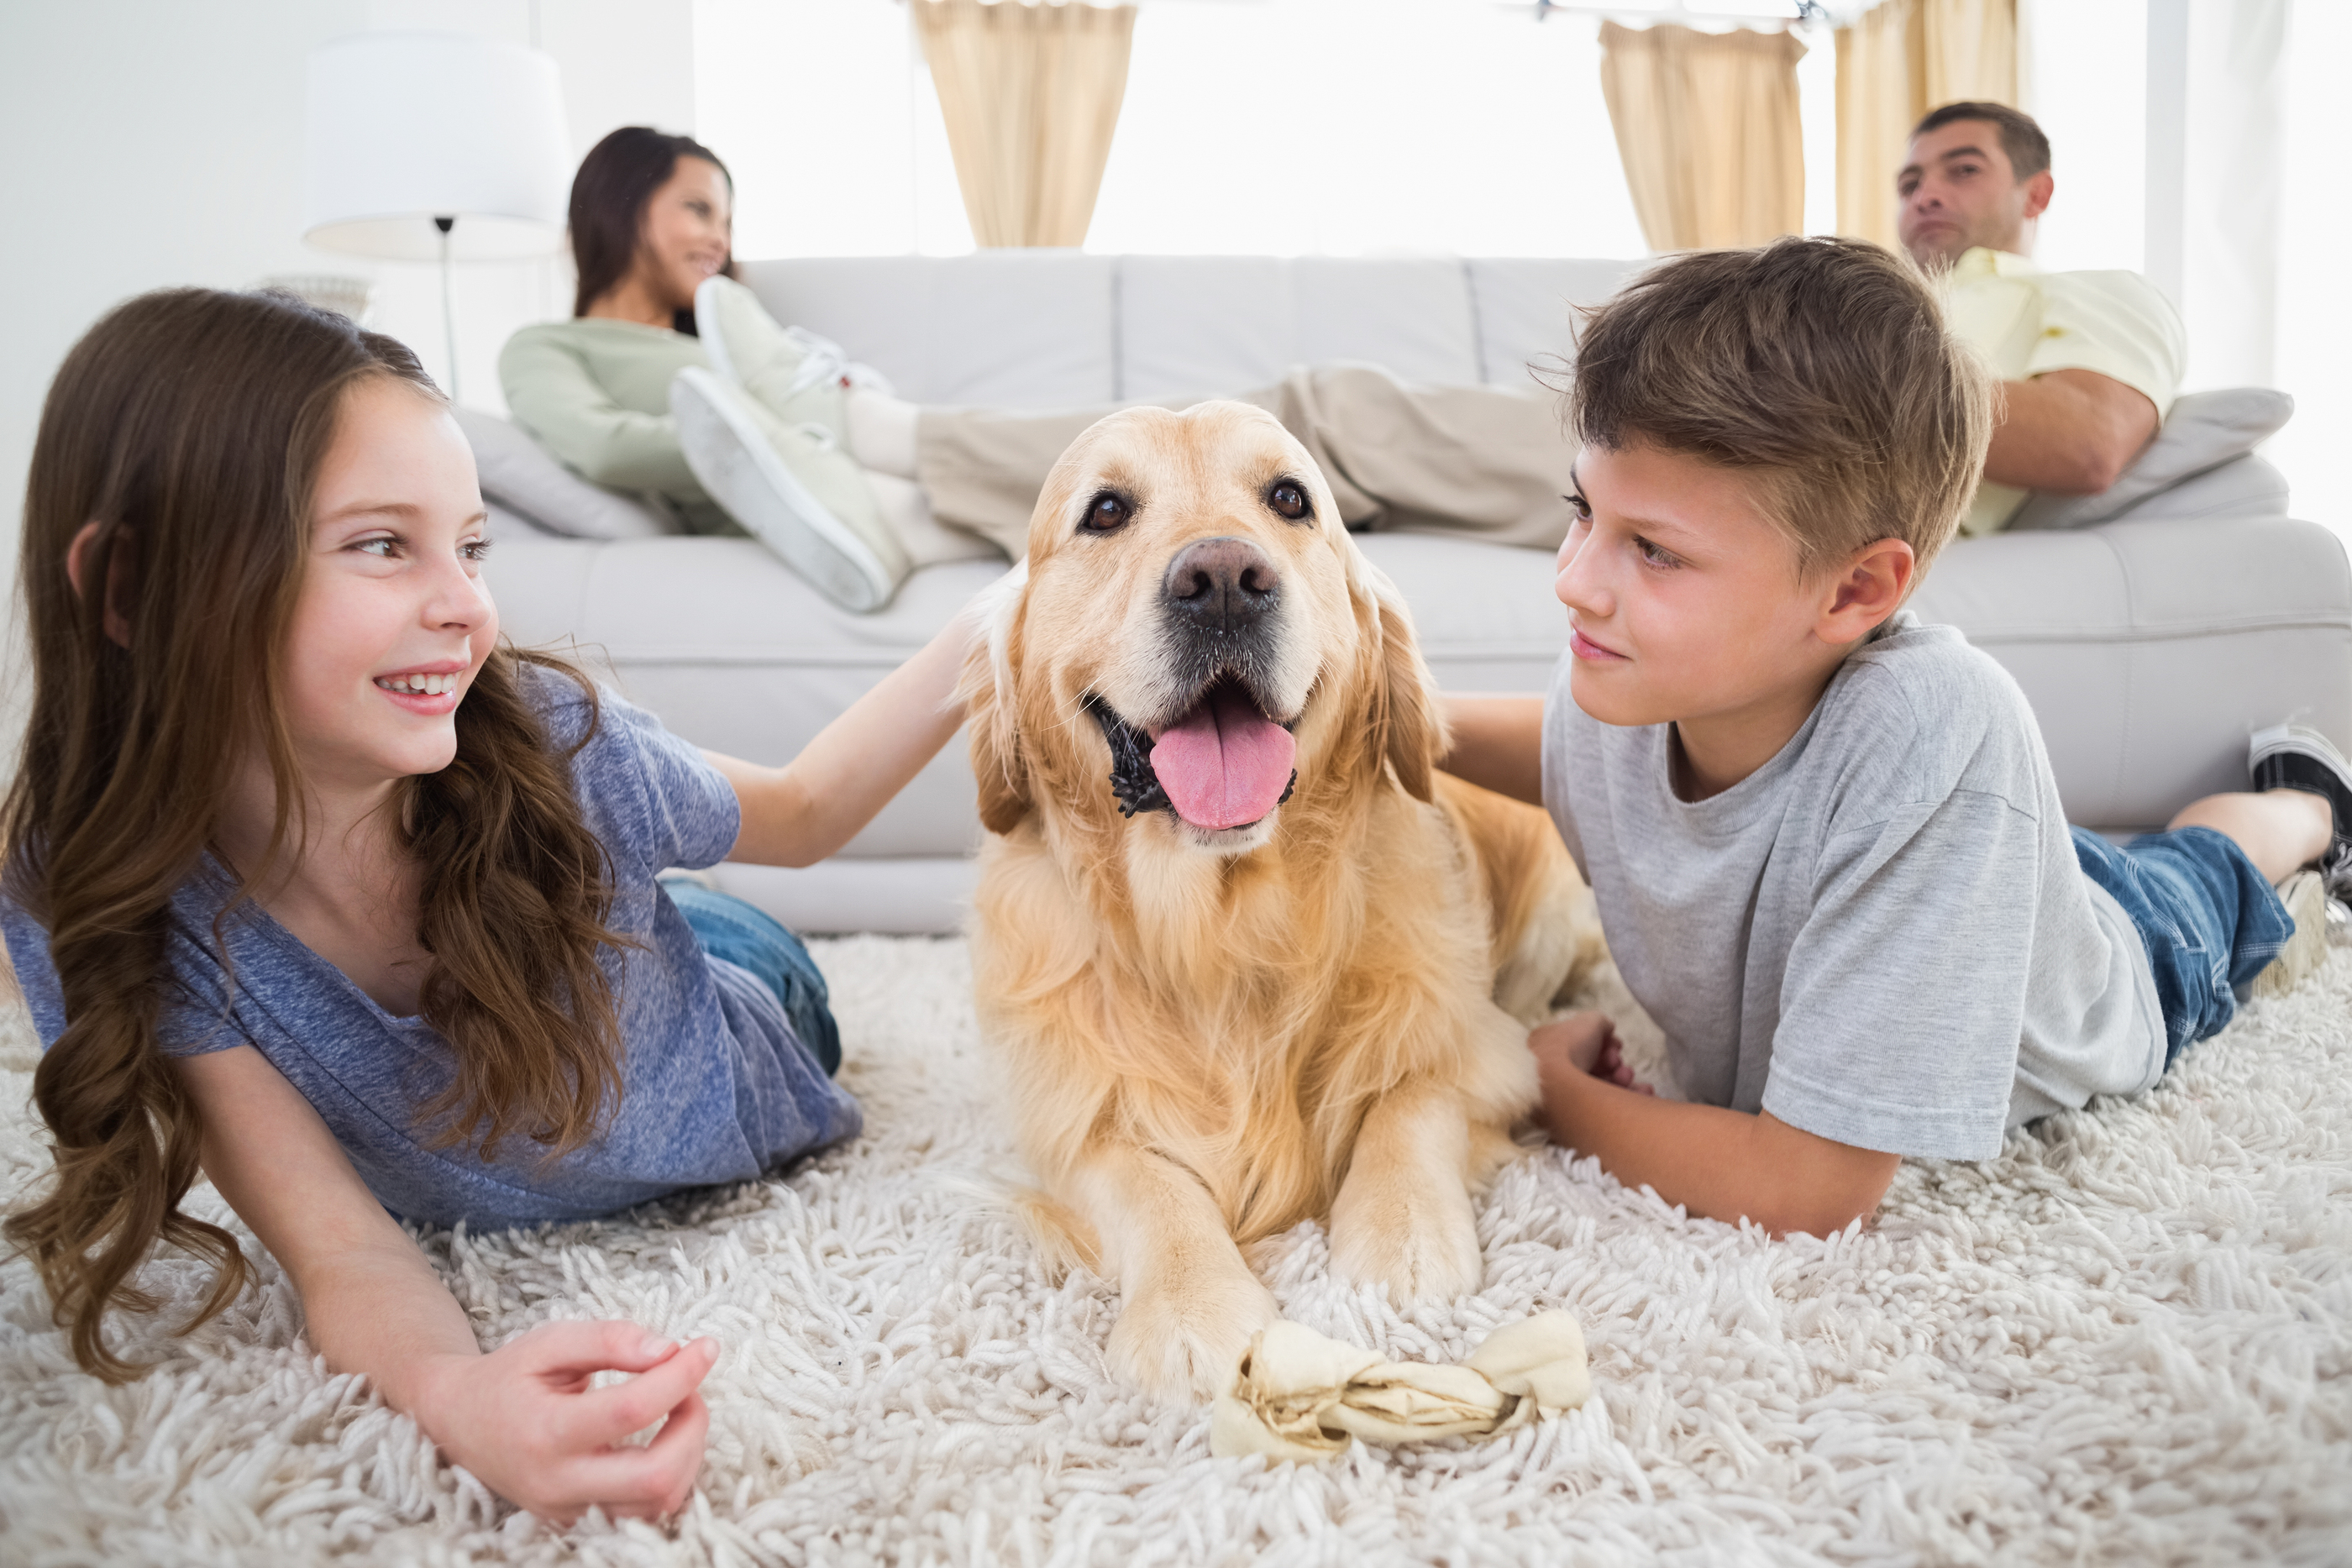 Cute siblings stroking dog on rug while parents relaxing on sofa at home